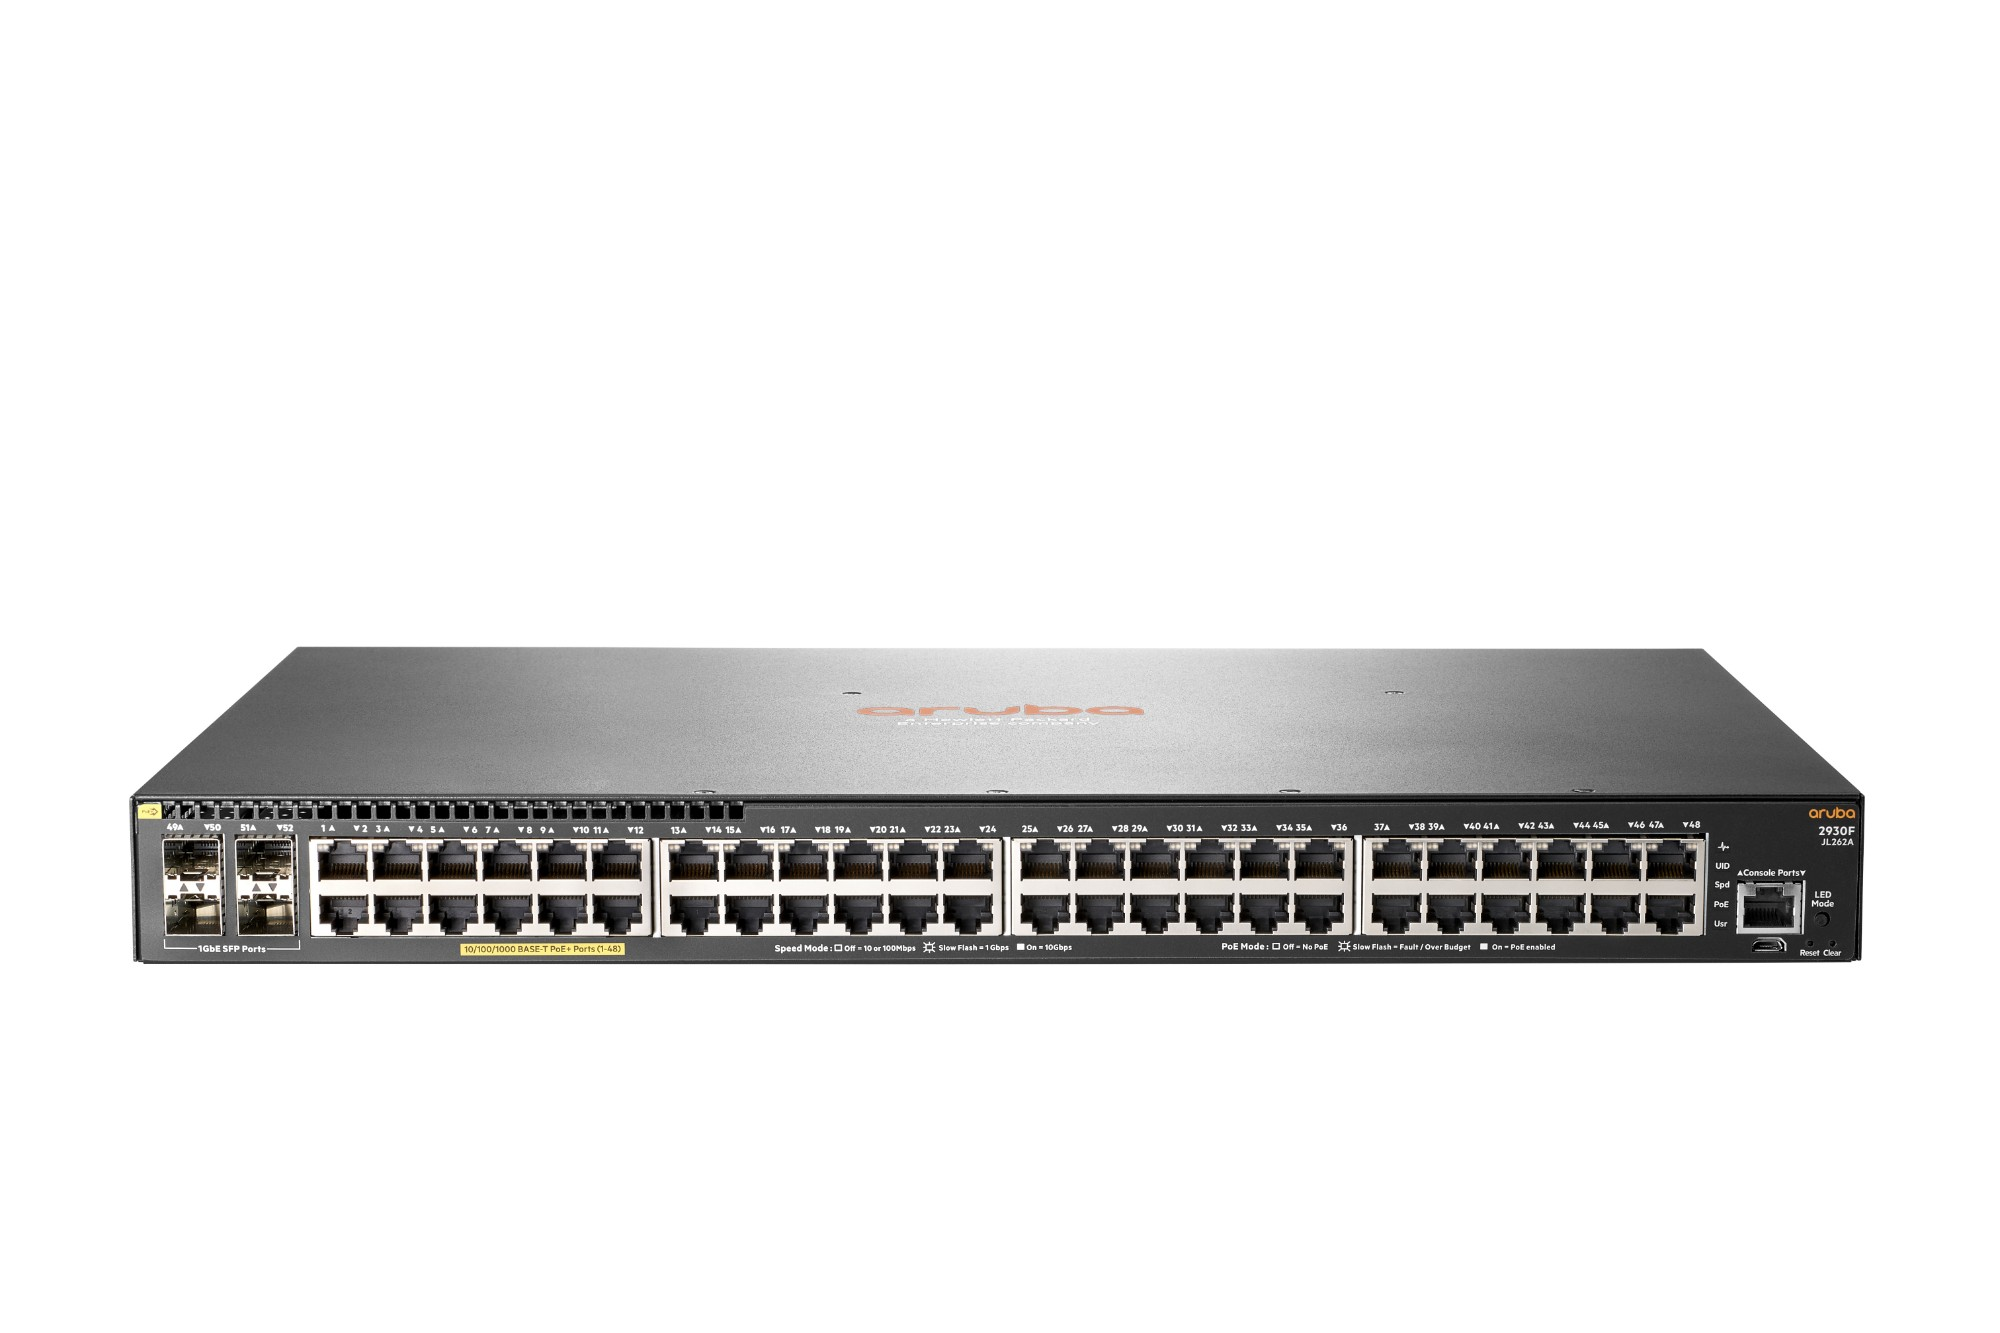 Hewlett Packard Enterprise Aruba 2930F 48G PoE+ 4SFP Managed network switch L3 Gigabit Ethernet (10/100/1000) Power over Ethernet (PoE) 1U Grey